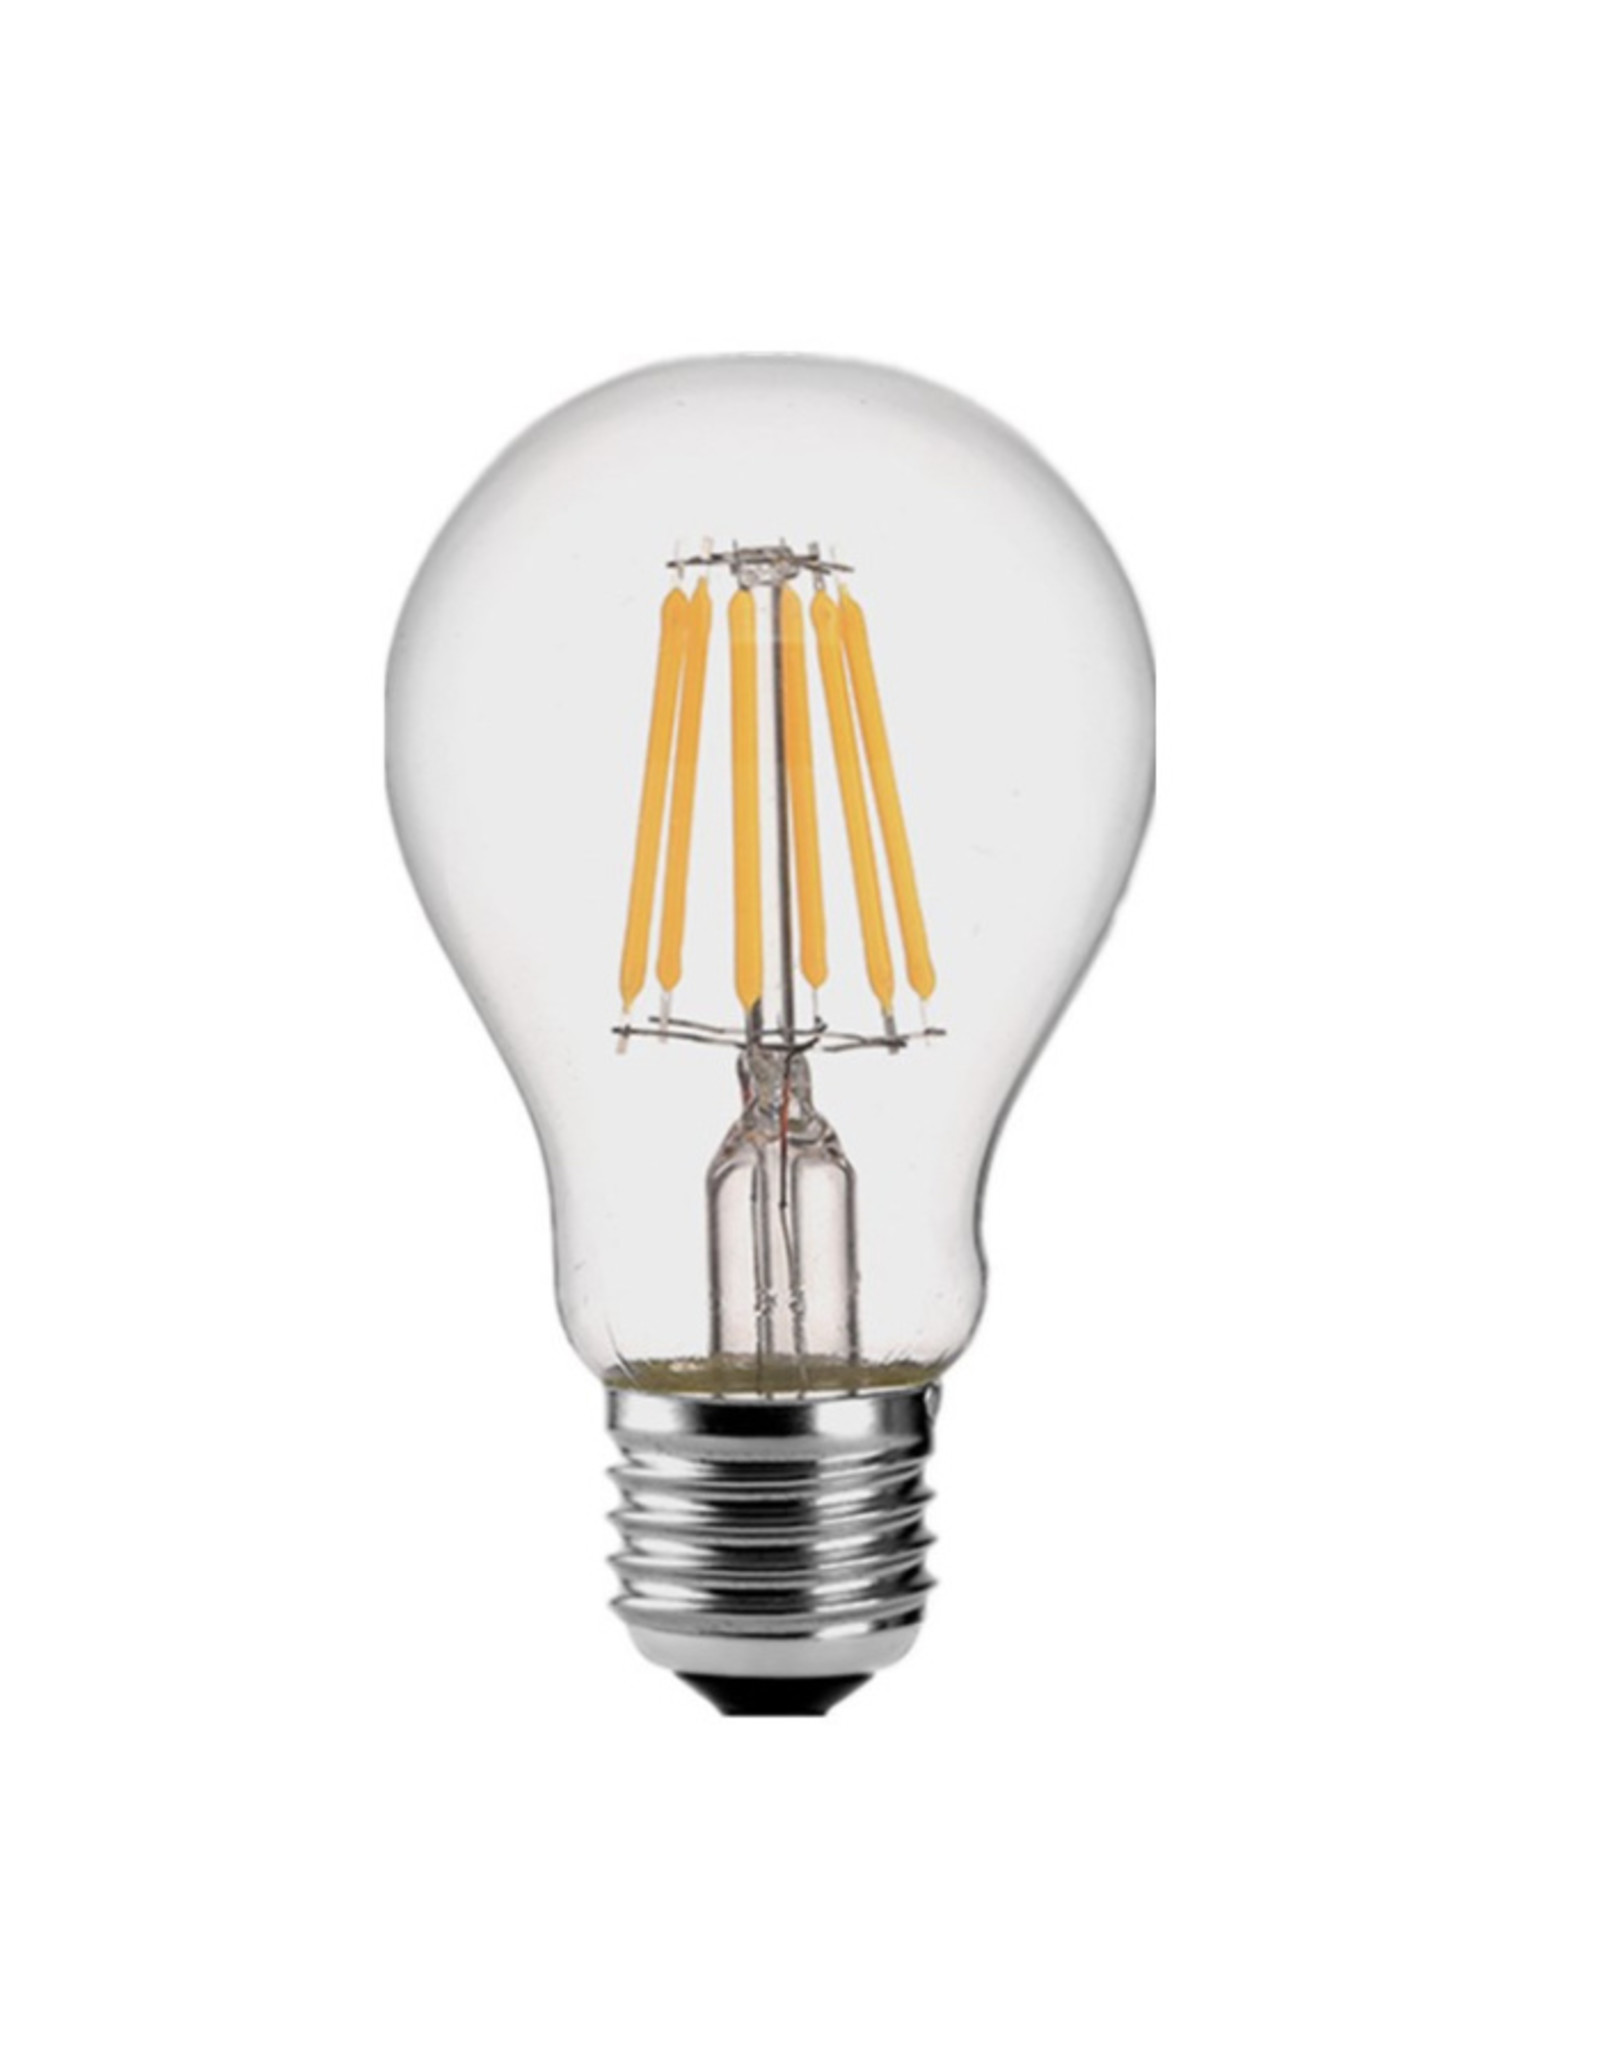 Lights A60 - 4W - 2700K - E27 - CLEAR - 220V - DIMMABLE